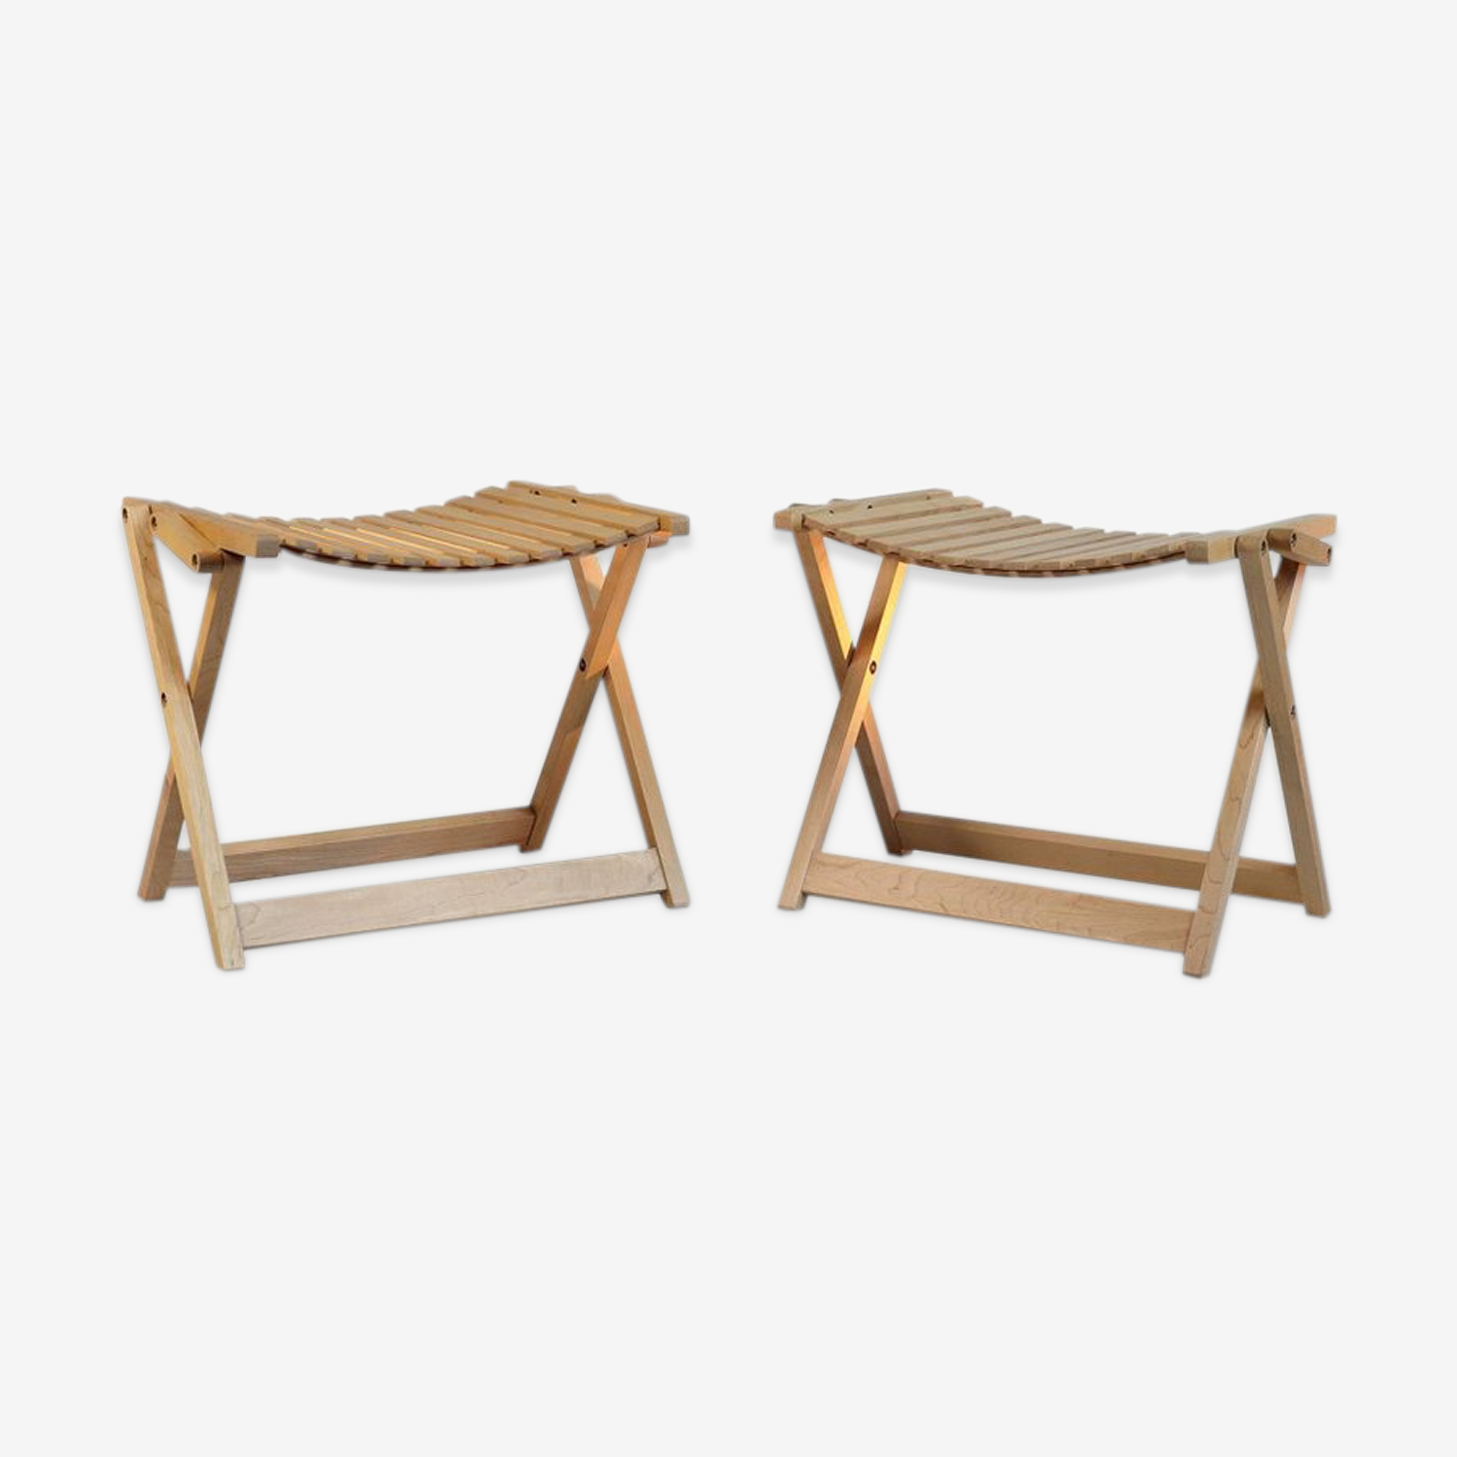 Pair of Jean-Claude blue Maple stool